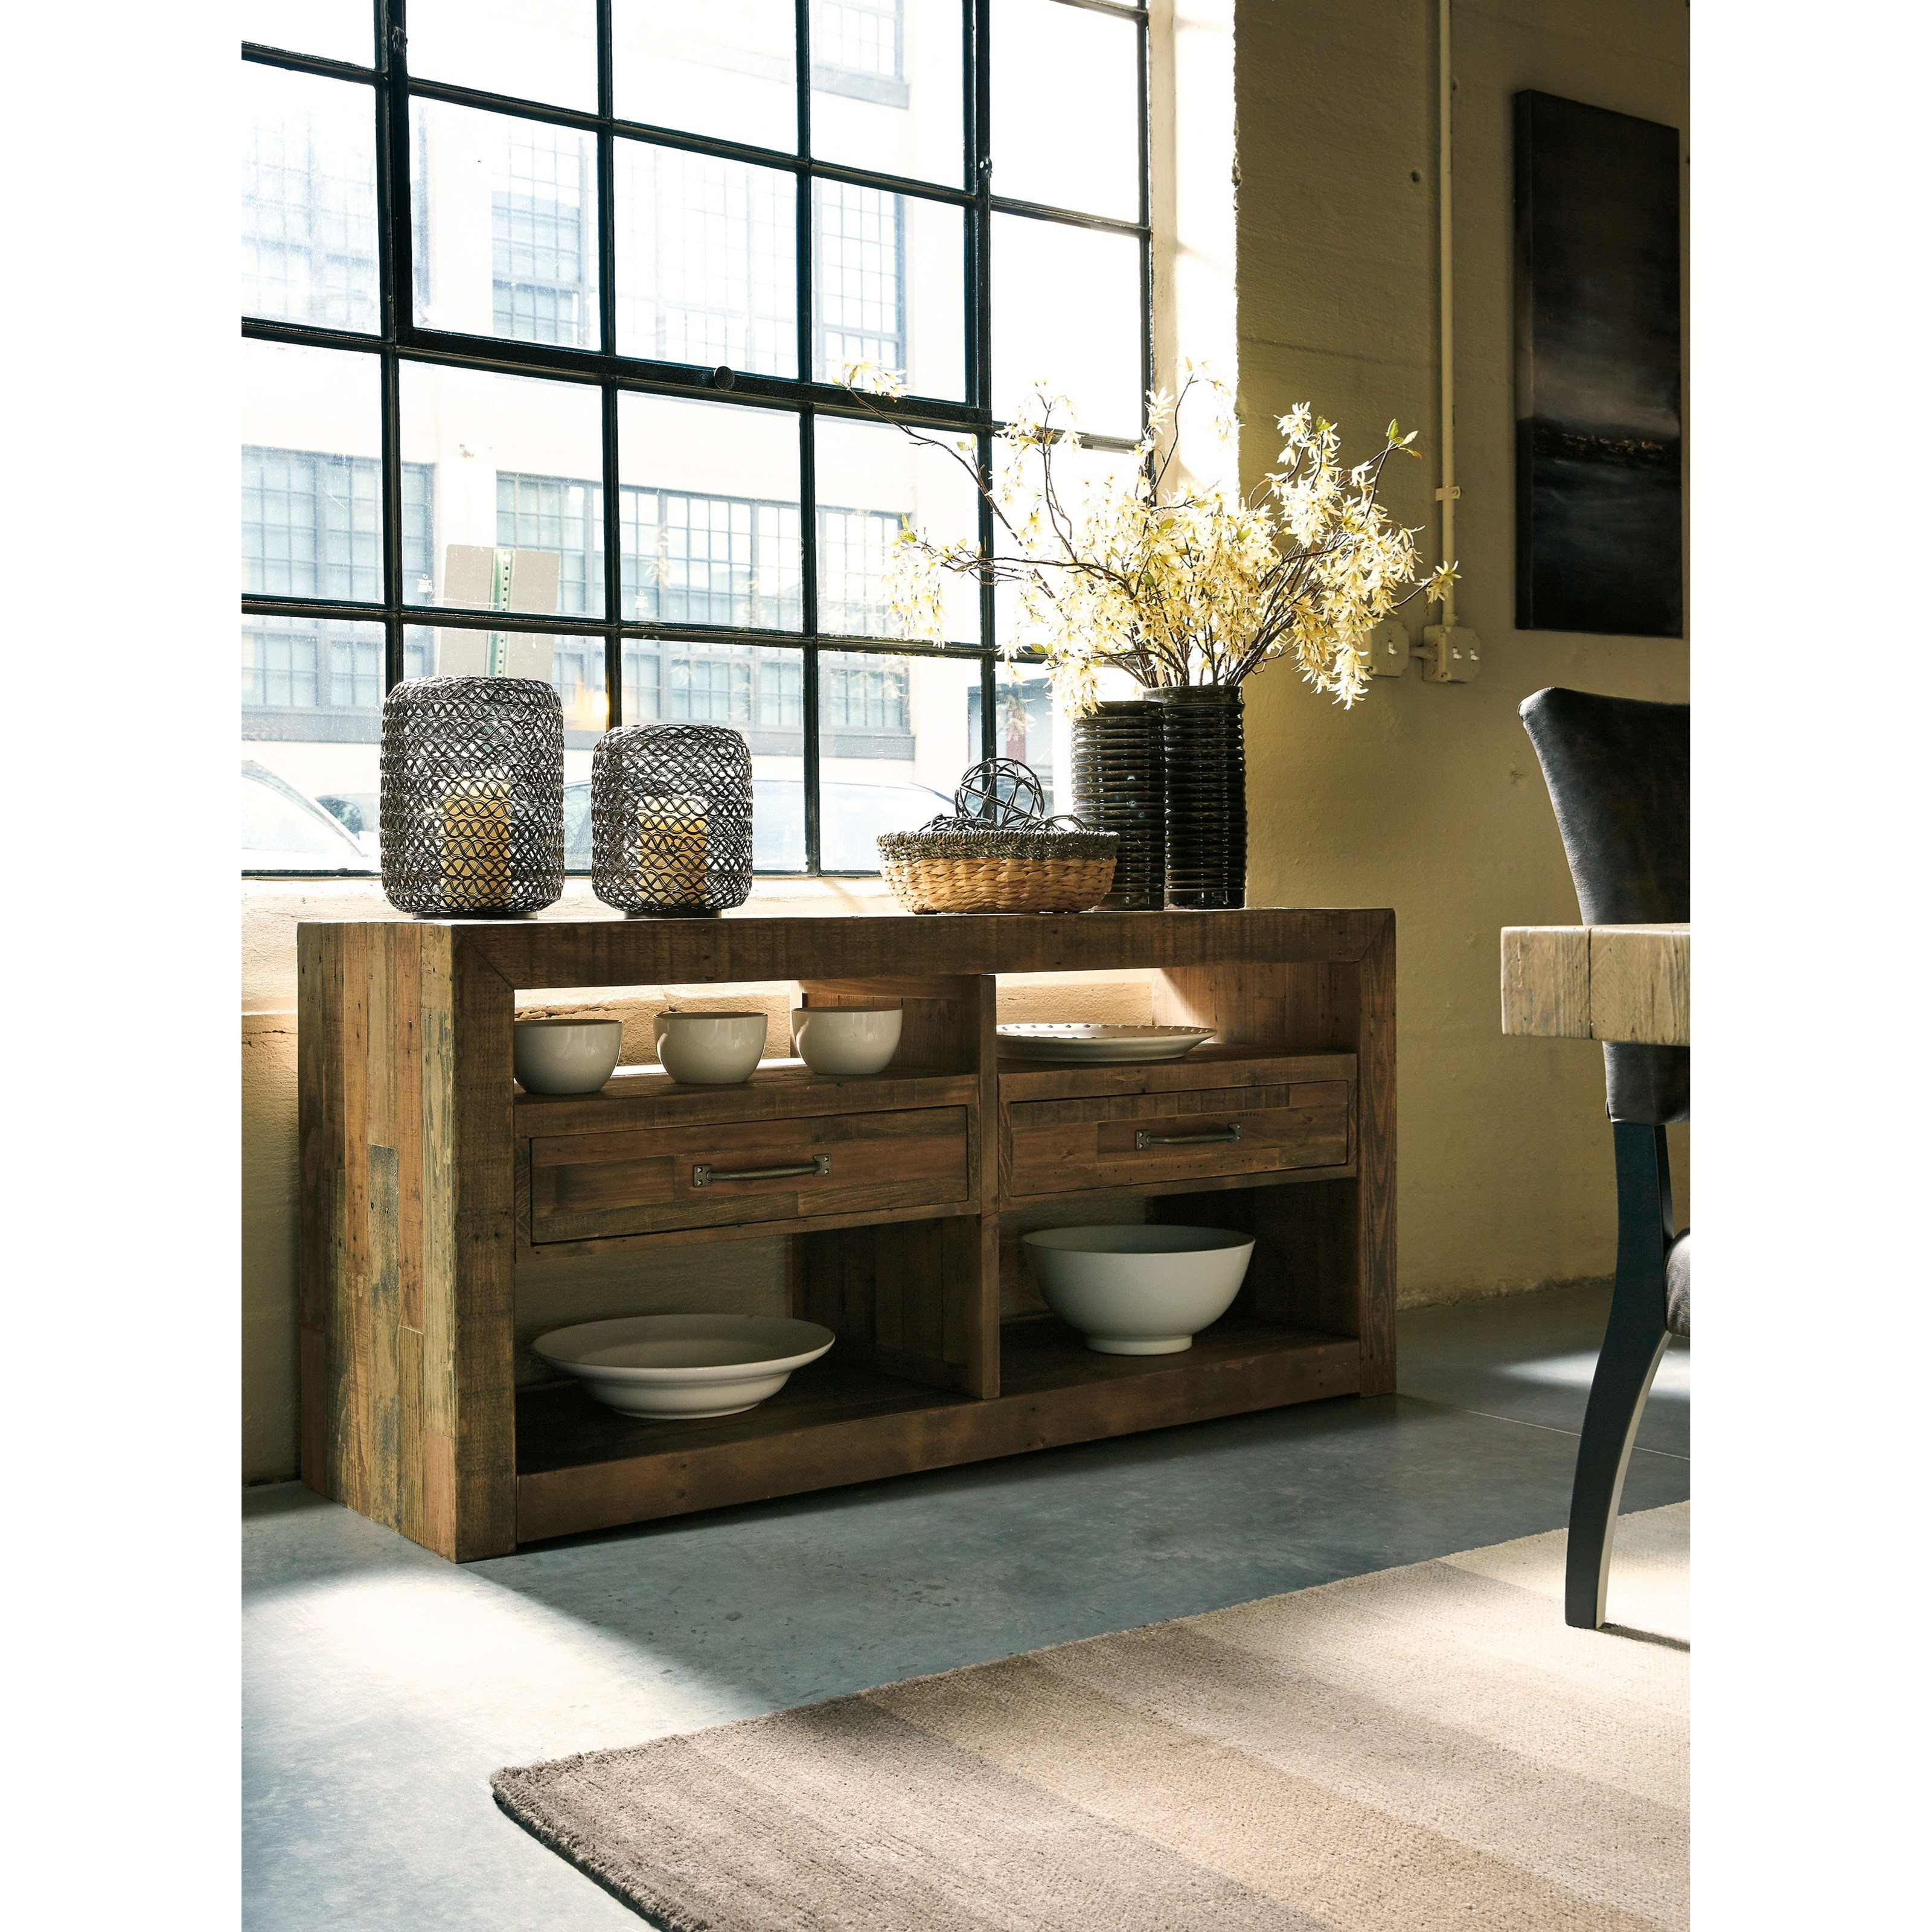 Ashley S Nest Decorating A Dining Room: Signature Design By Ashley Sommerford D775-60 Solid Wood